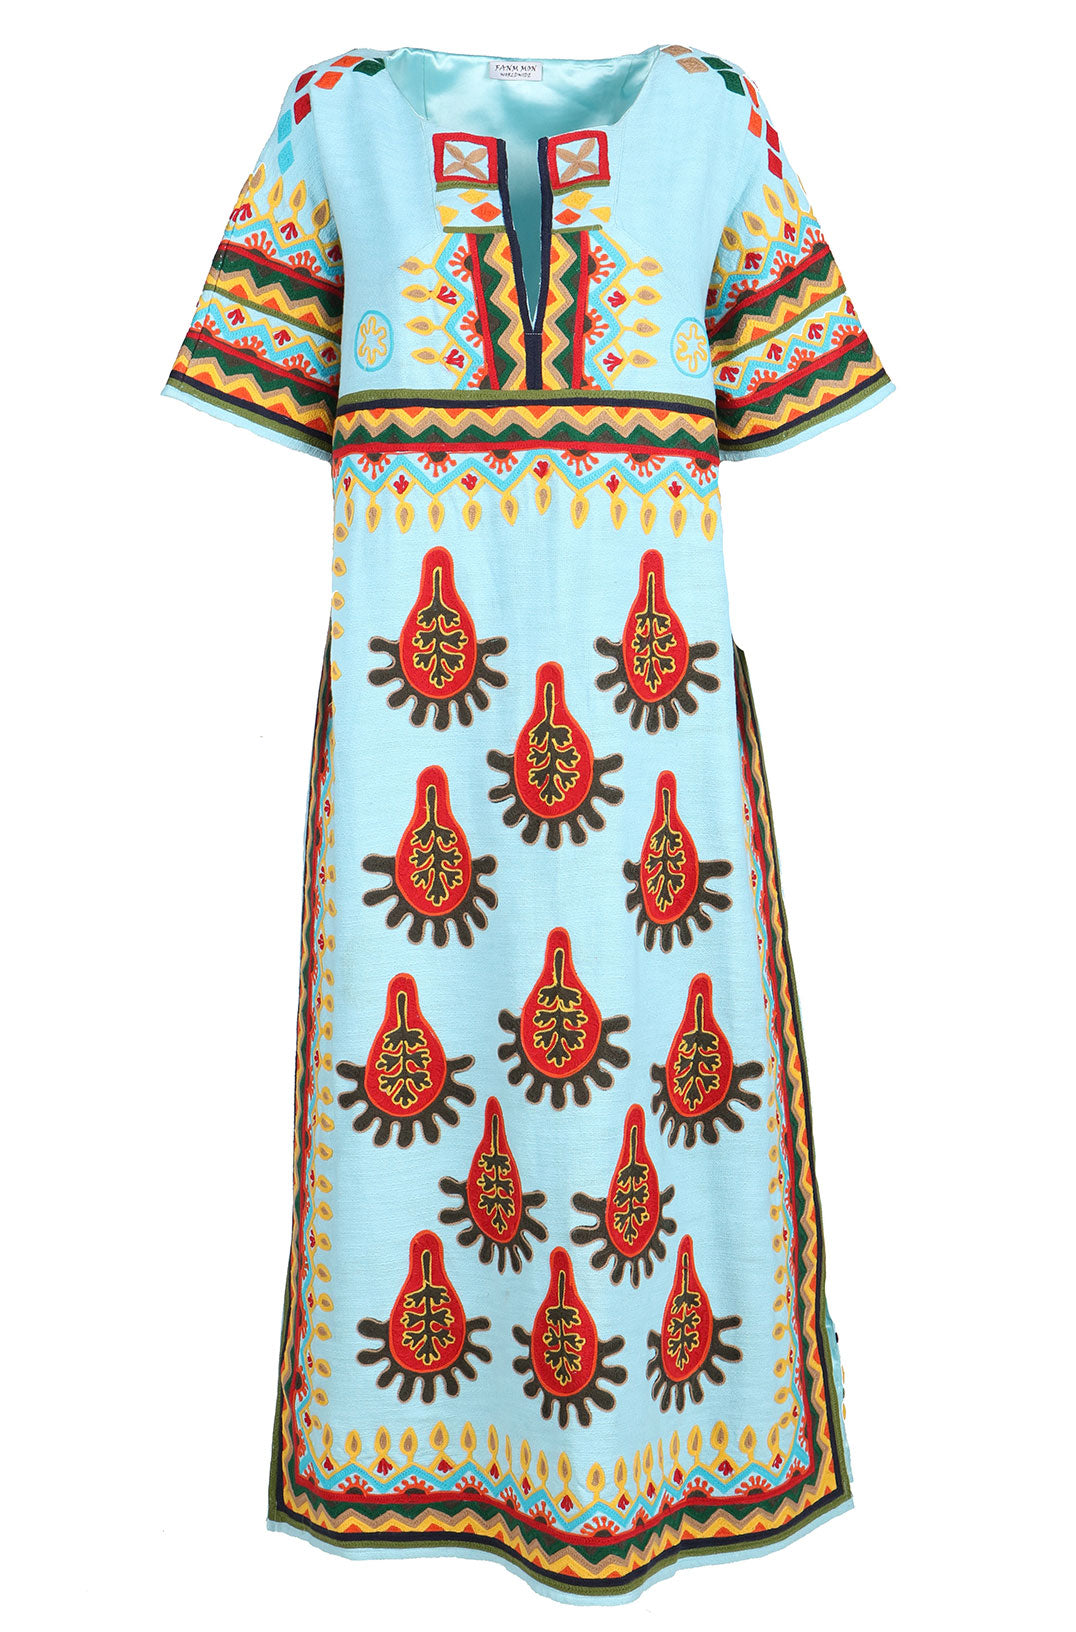 Fanm Mon TEKA Aqua Blue Vyshyvanka Multi Color Summer Fun Geometric Pattern MIDI Dress